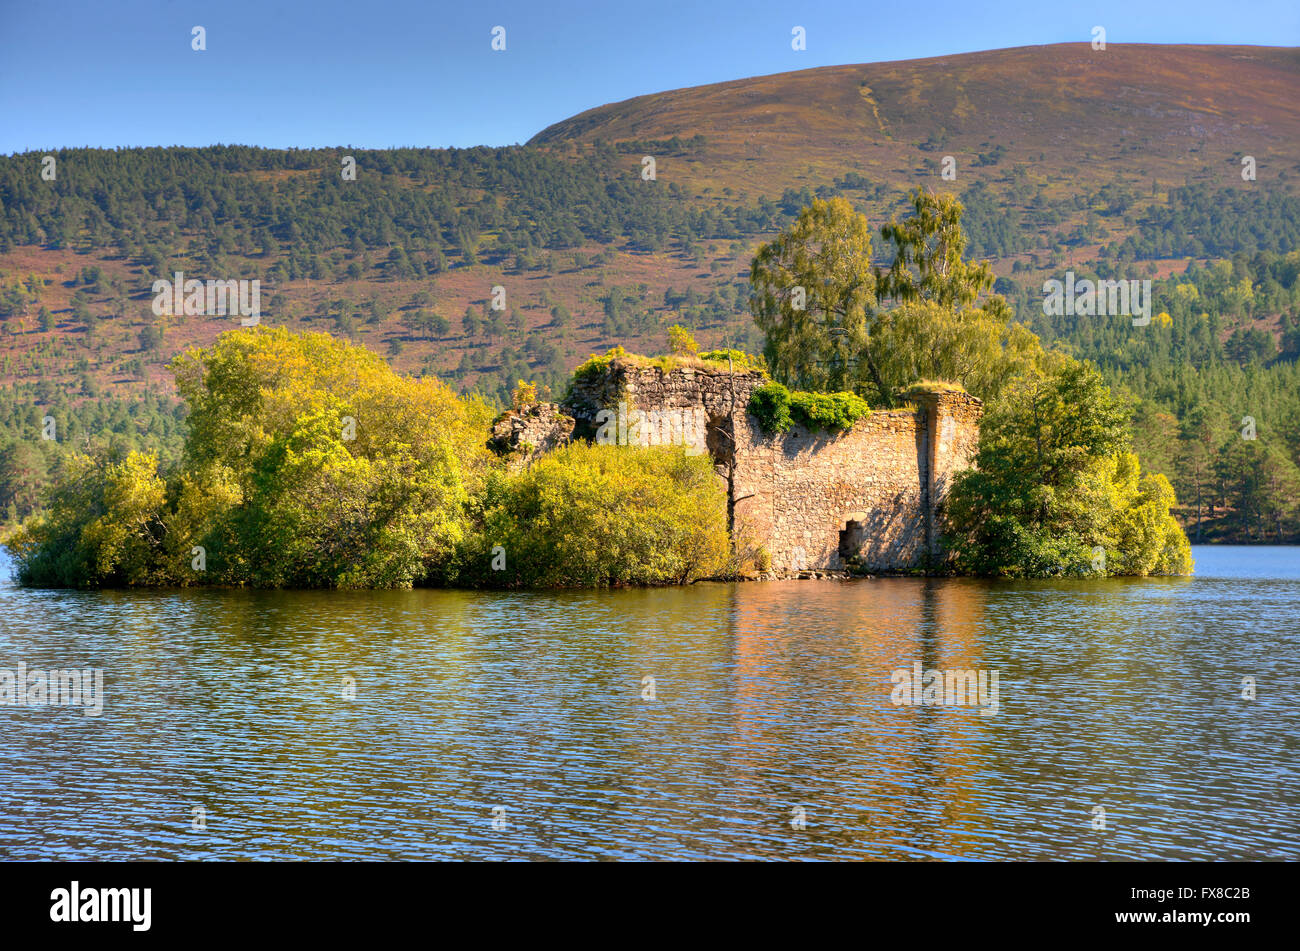 Castle ruin ( Wolf of Badenoch)  on Loch an Eilein, Rothiemurchus, Cairngorms, Scottish Highlands. - Stock Image